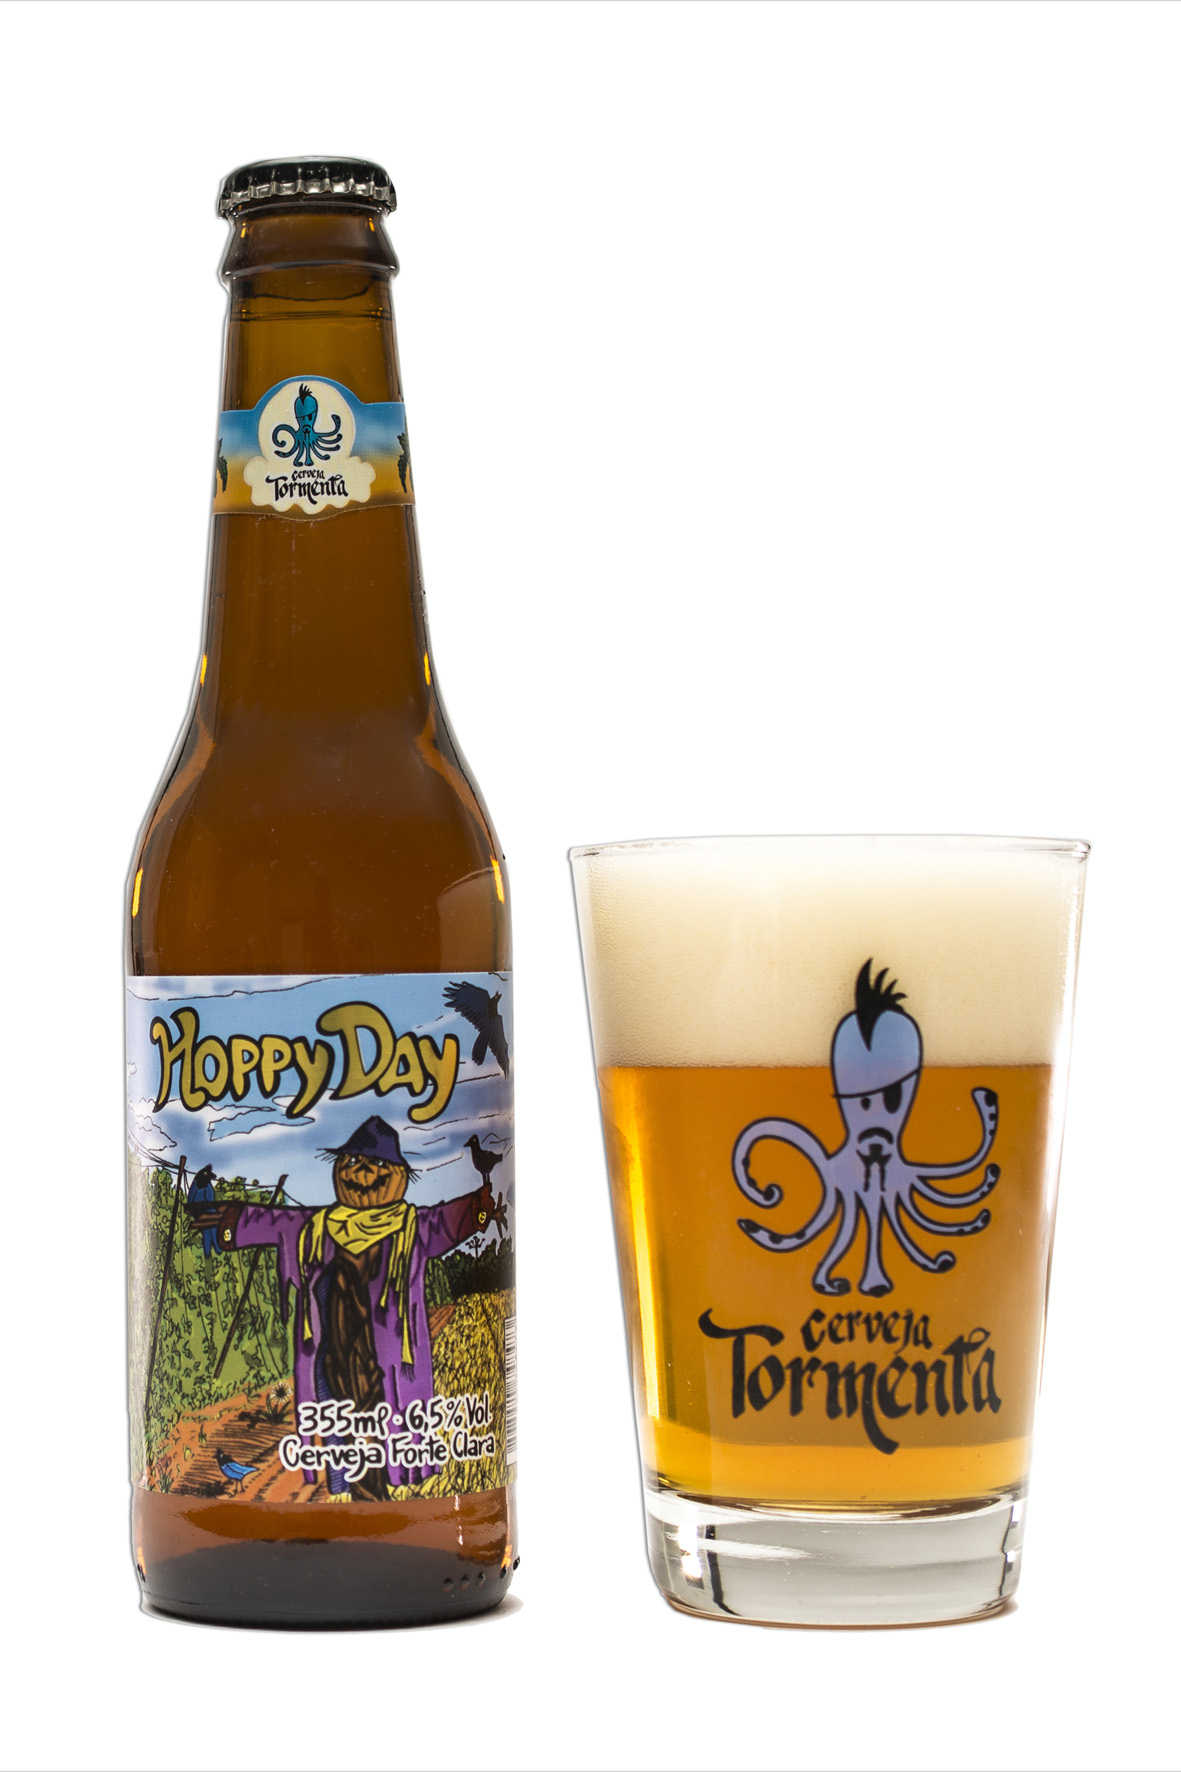 Hoppy Day Tormenta.jpg